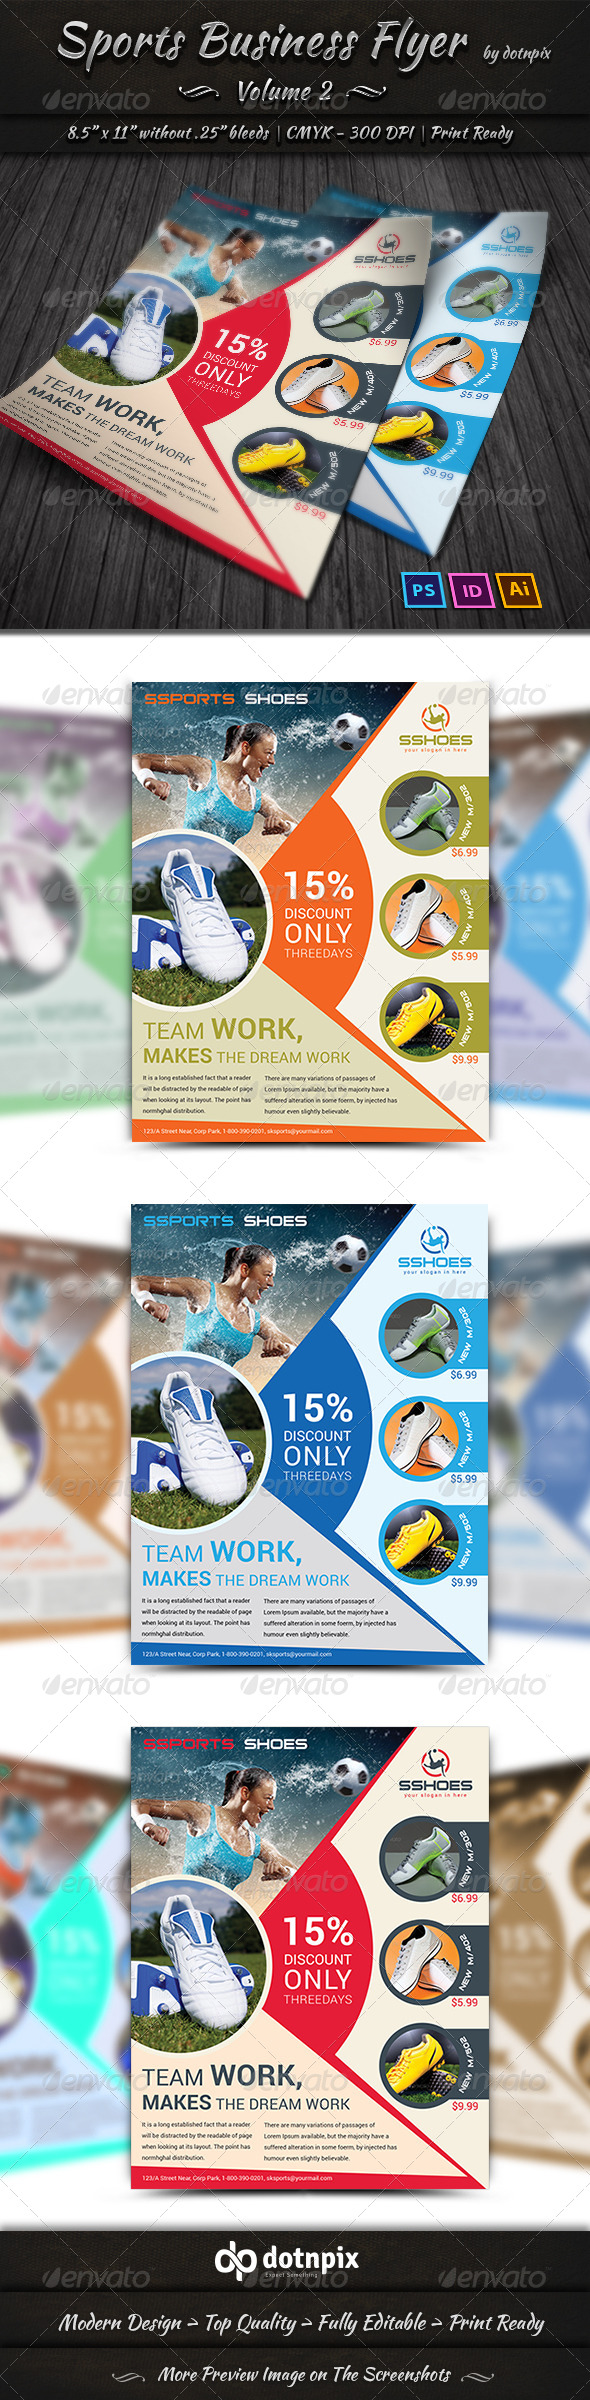 Sports Business Flyer   Volume 2 - Sports Events